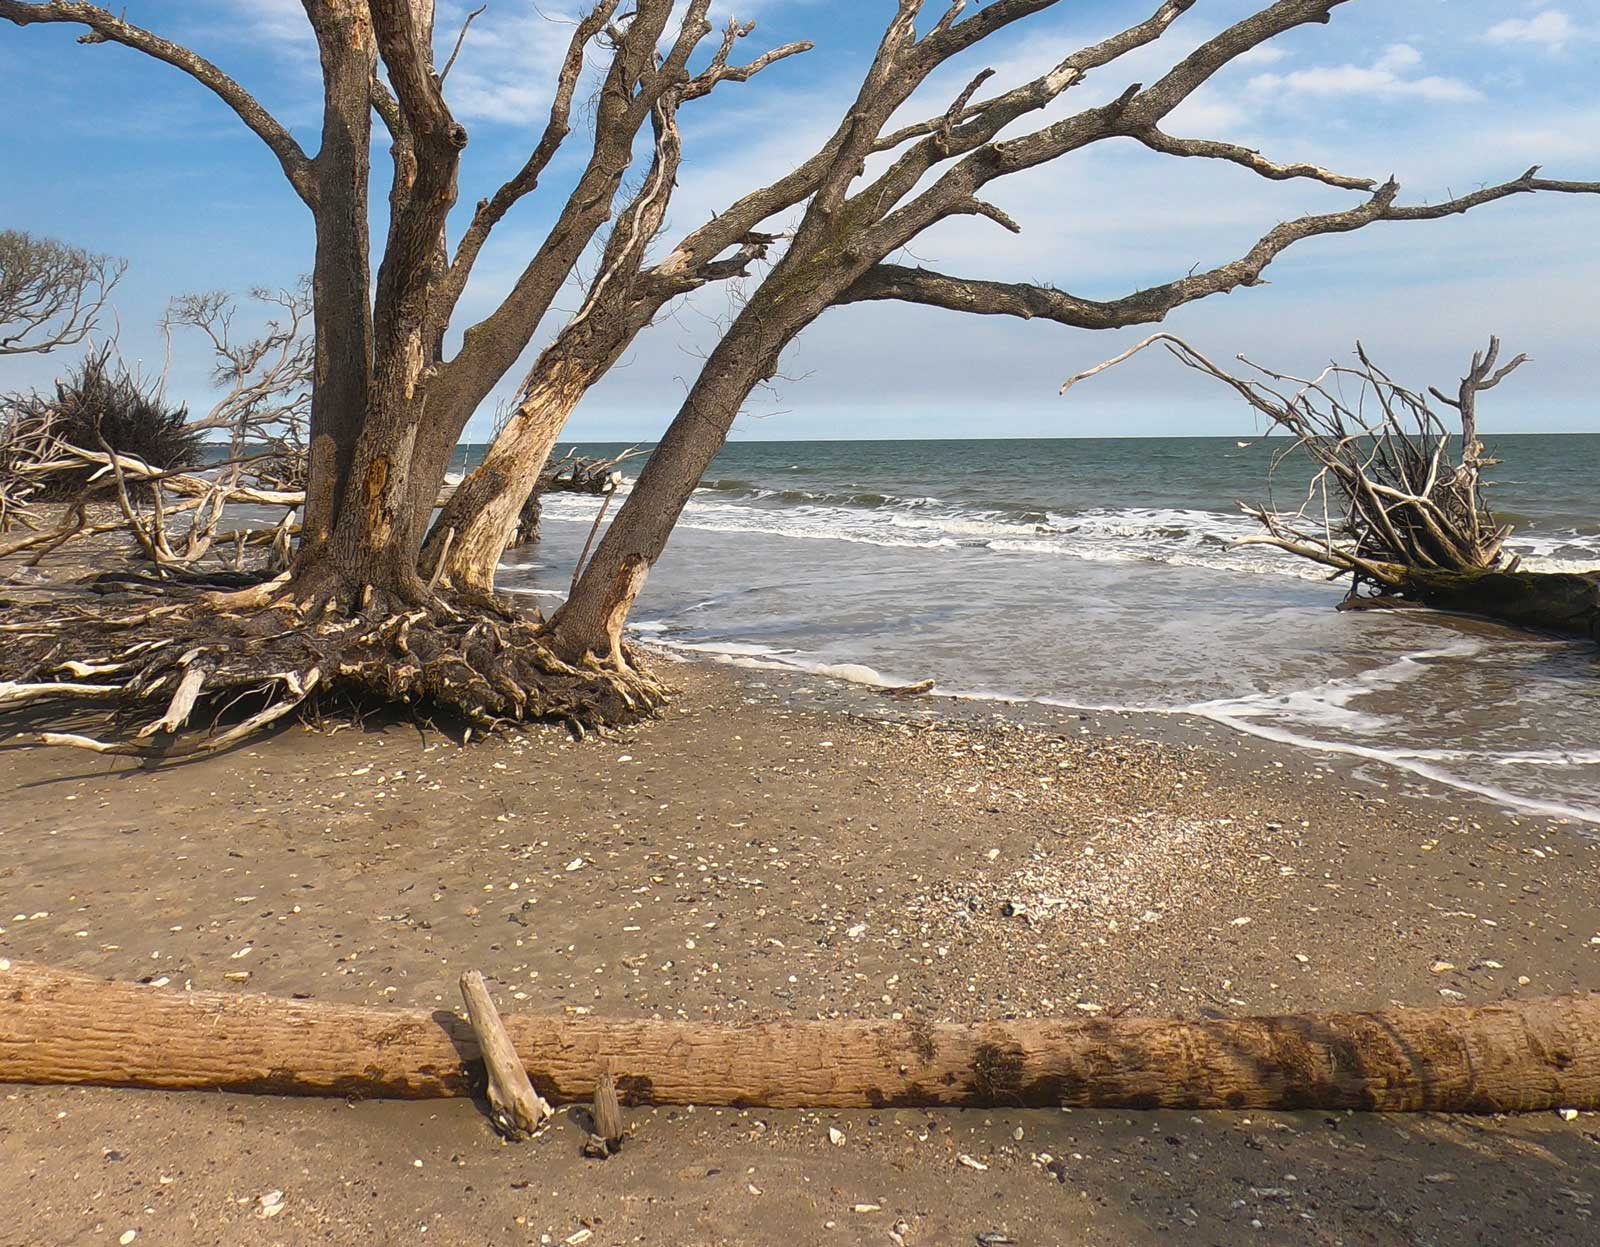 Beach boneyard at Botany Bay Plantation, Edisto Island, SC